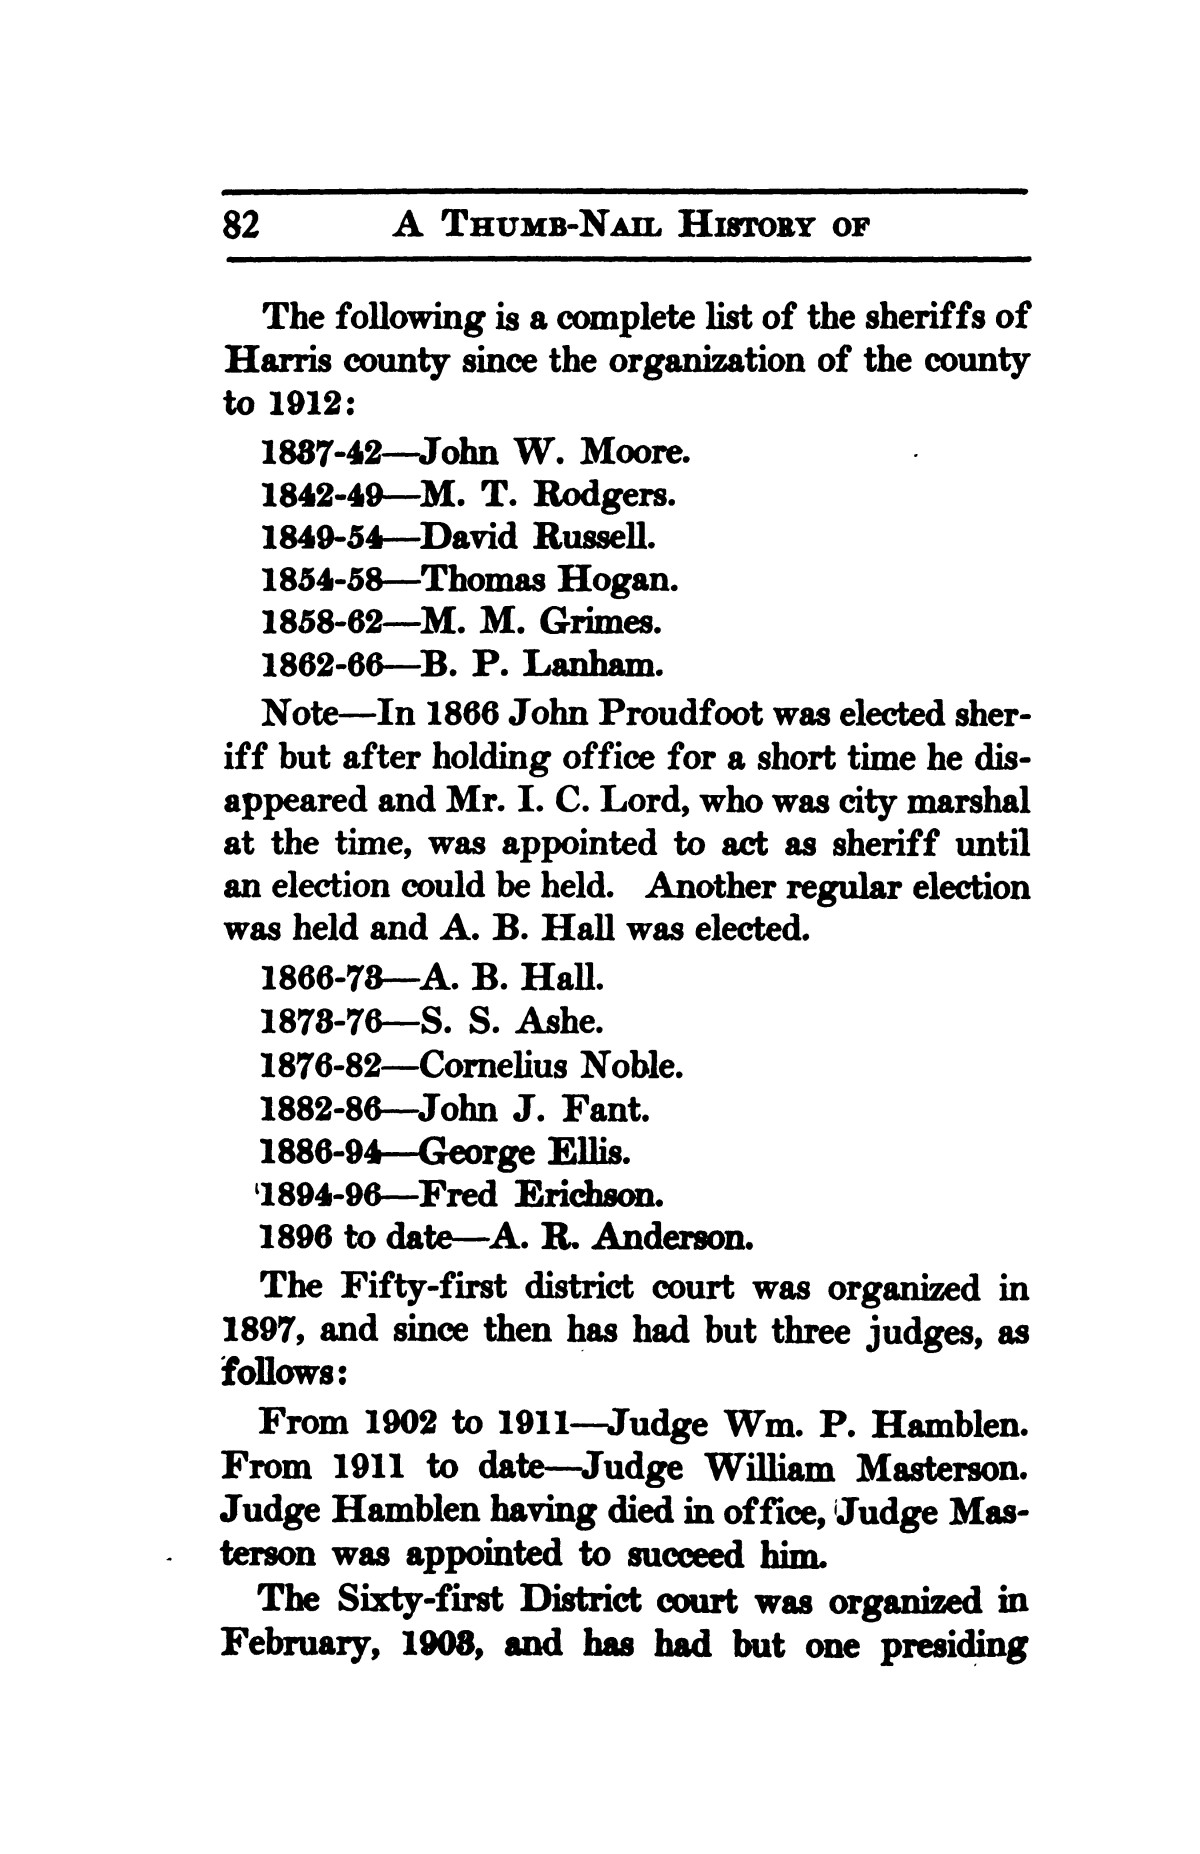 A thumb-nail history of the city of Houston, Texas, from its founding in 1836 to the year 1912                                                                                                      82